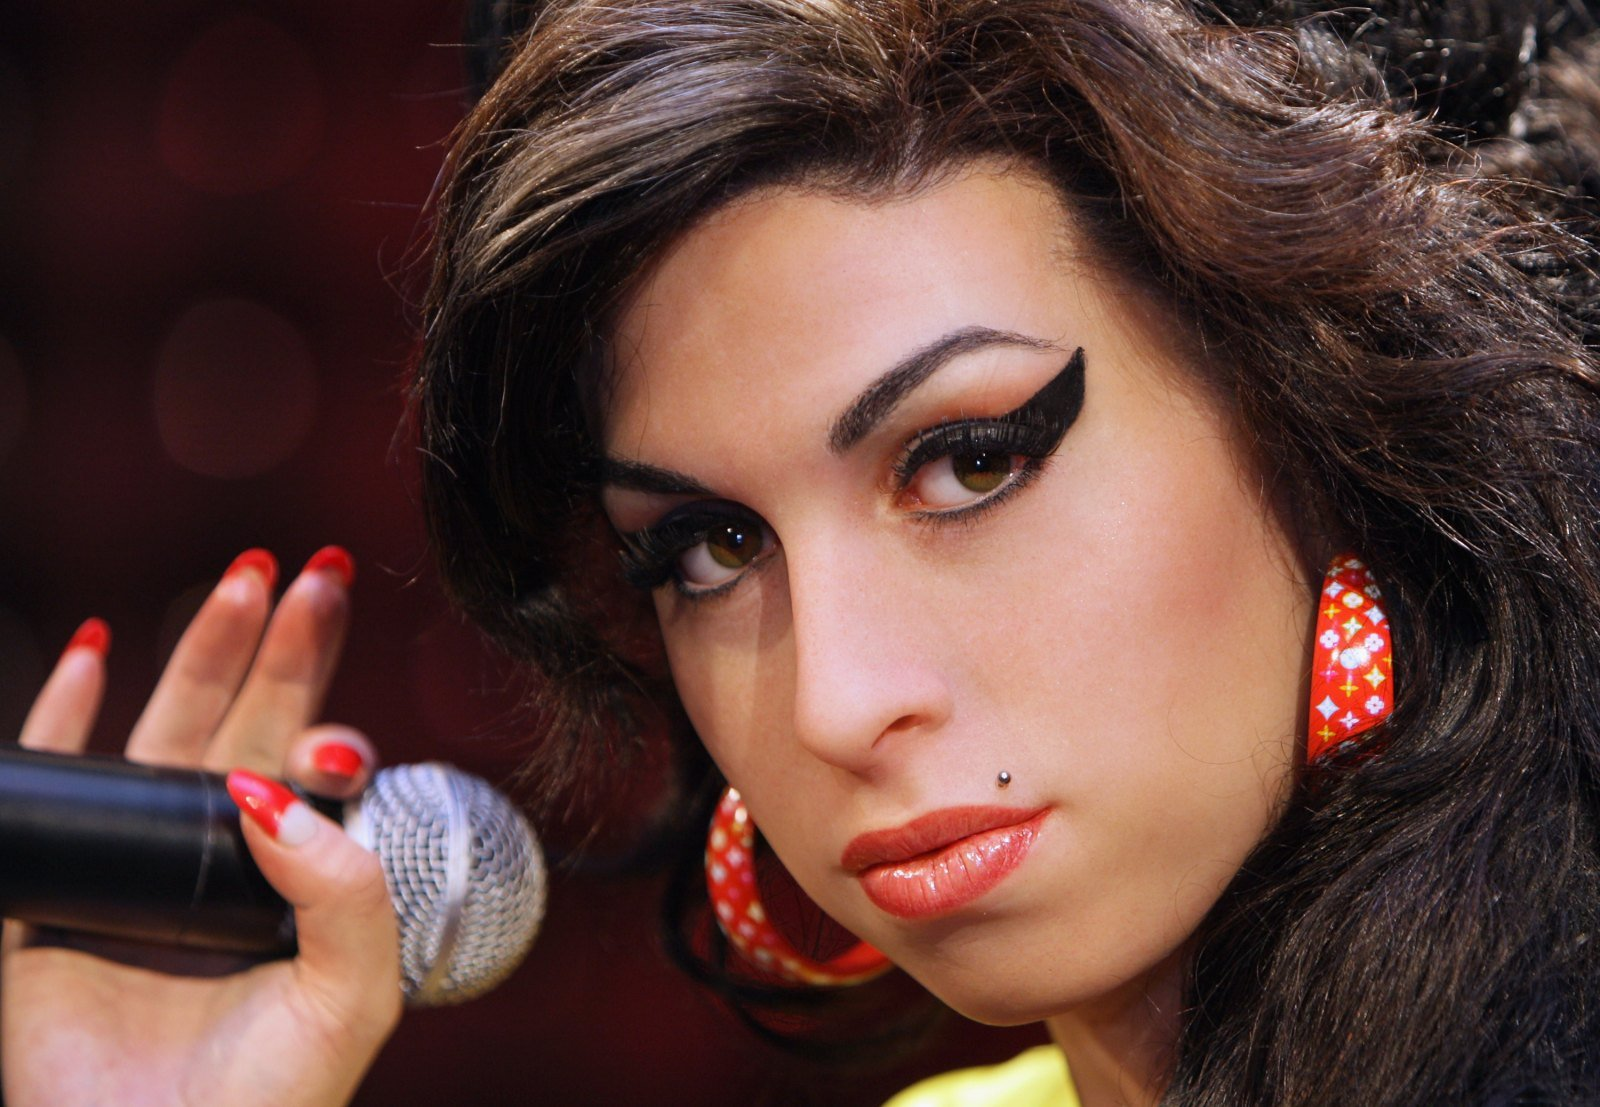 La artista Amy Winehouse HD